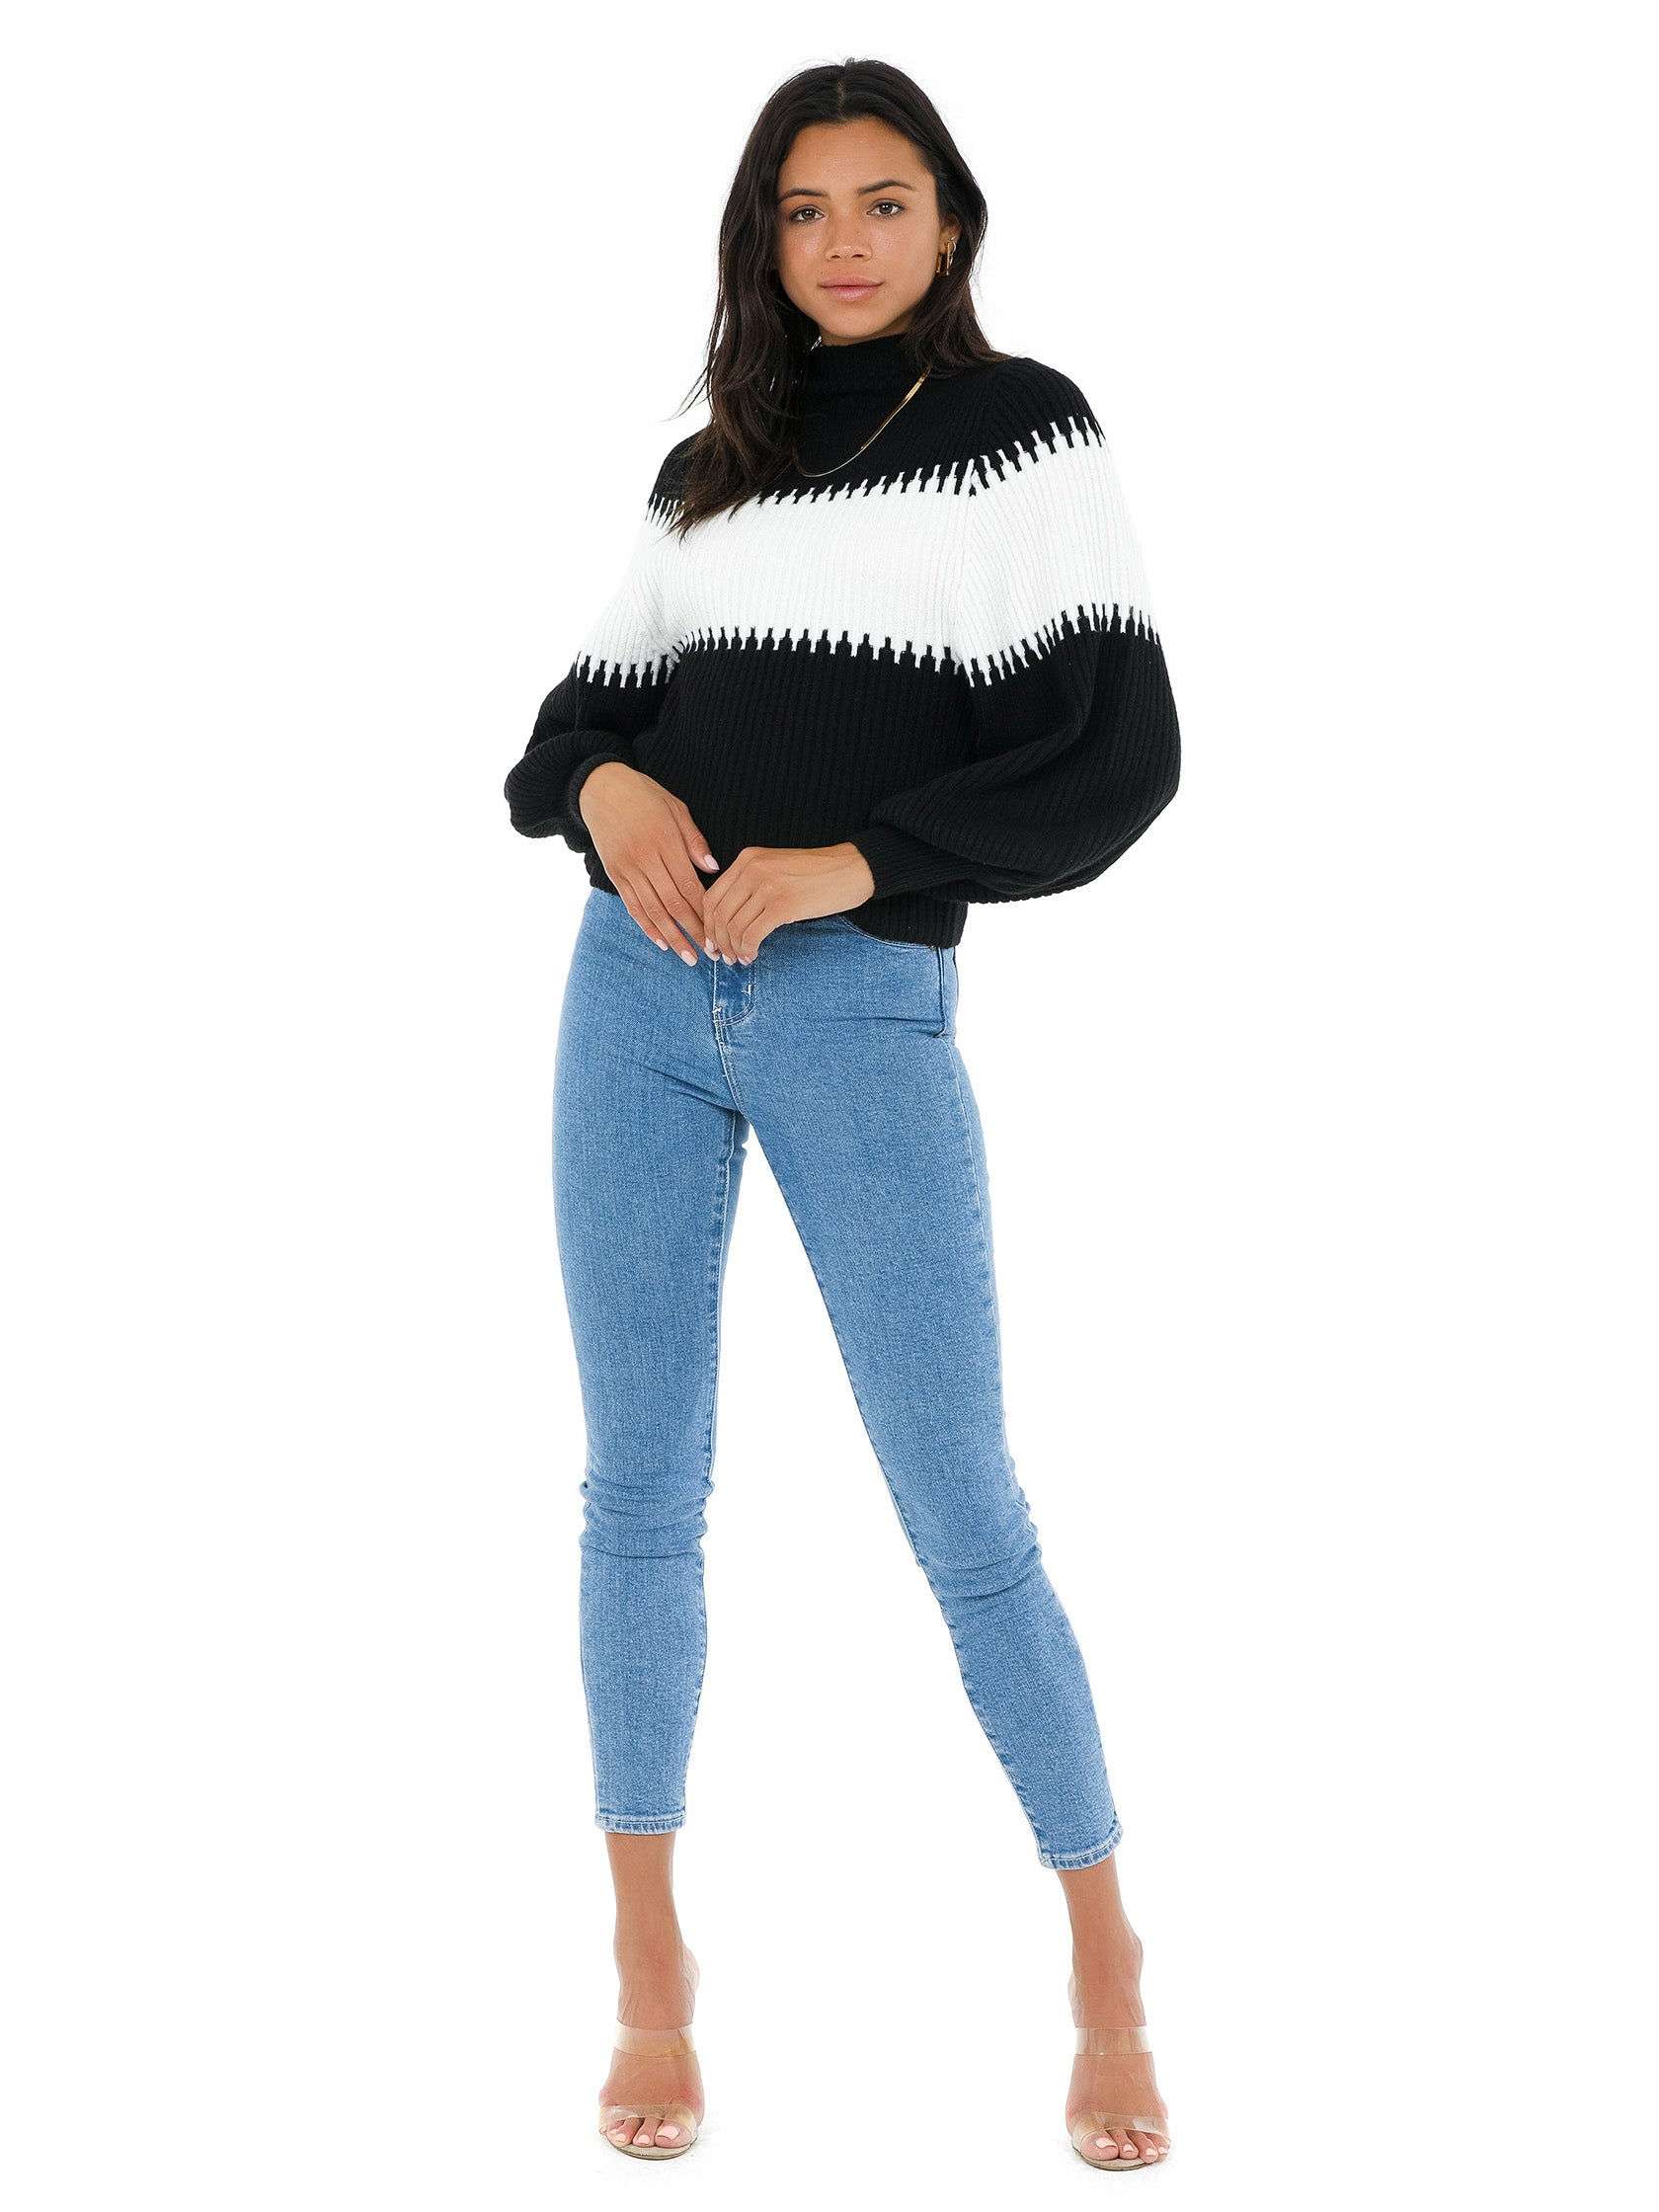 Girl wearing a sweater rental from French Connection called Sofia Knits Balloon Sleeve Jumper